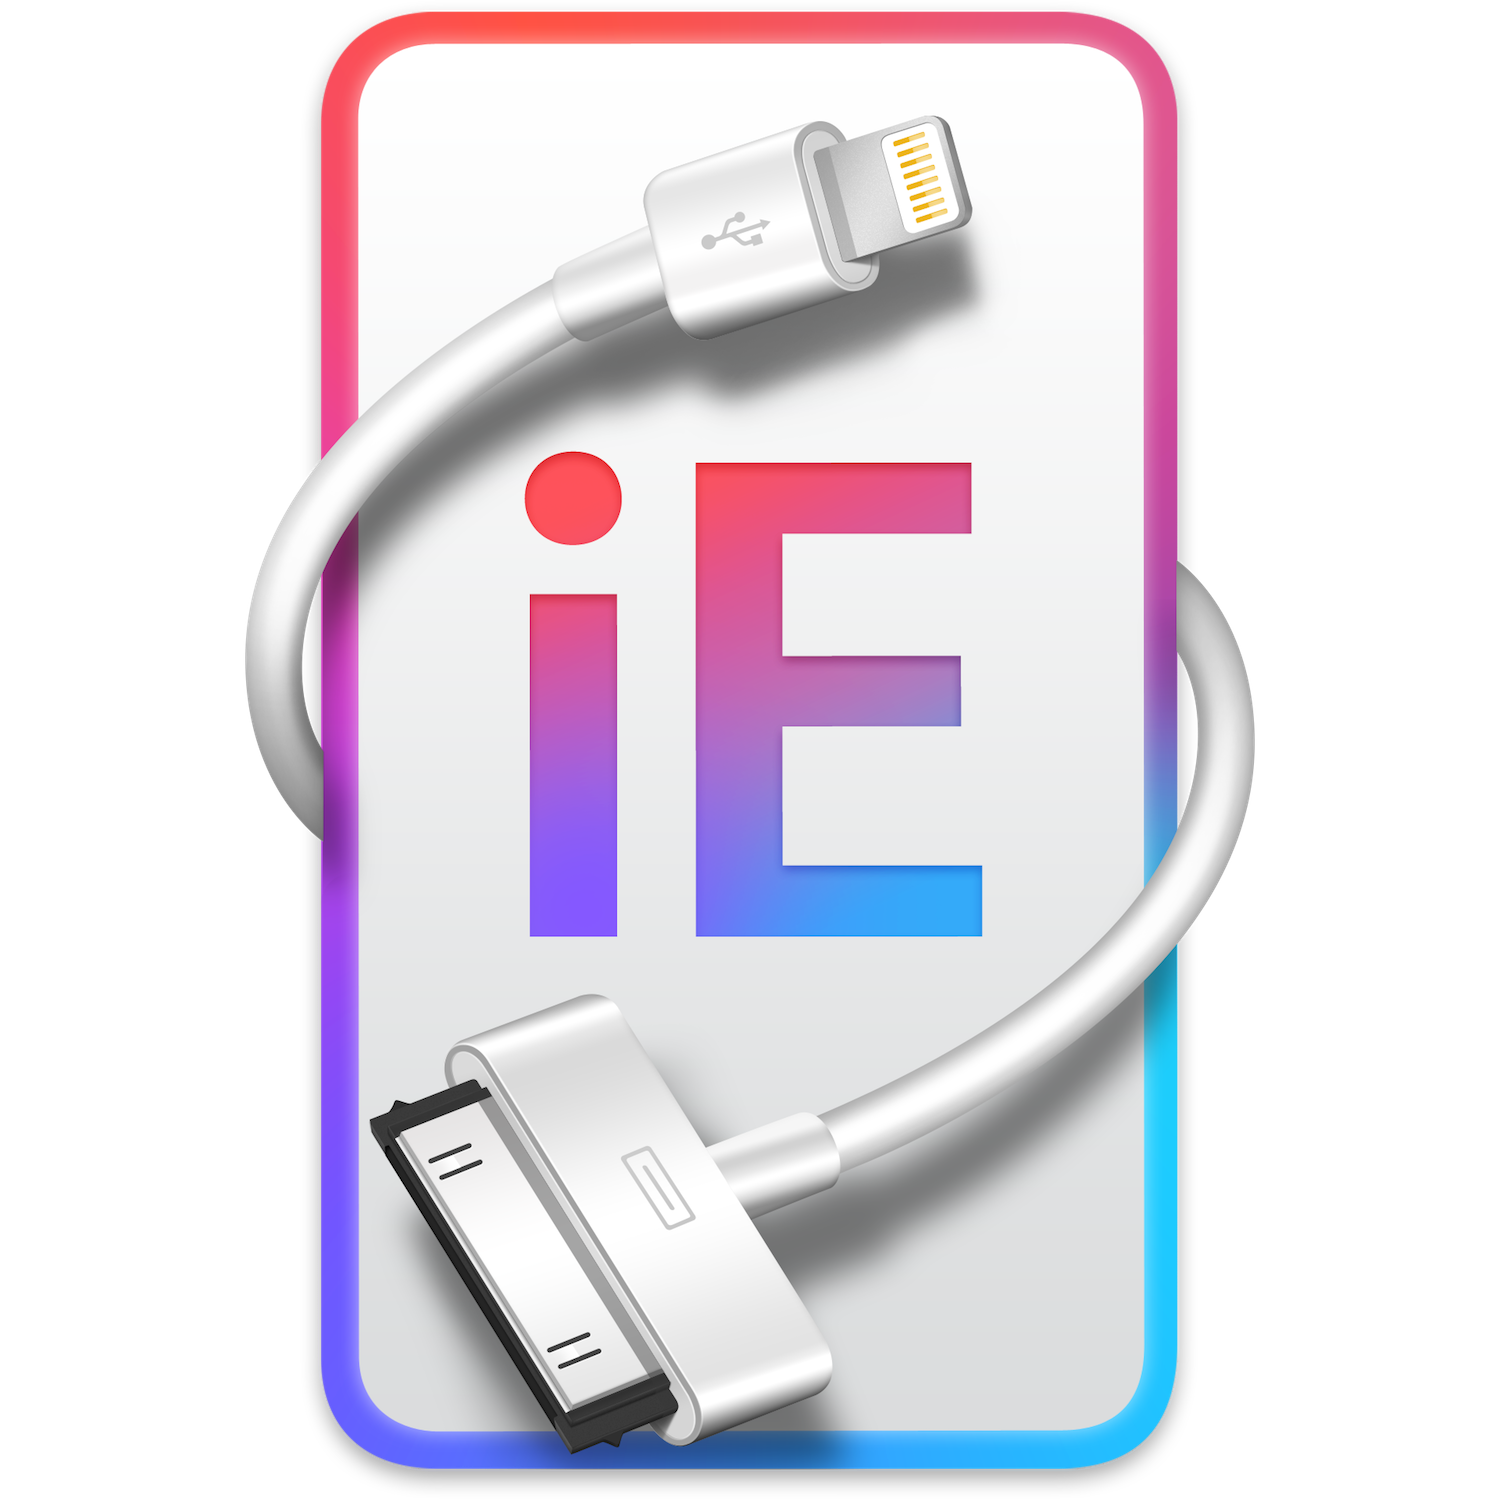 iExplorer 4.4.2 Crack With Registration Code For[Mac+Win] Free Download